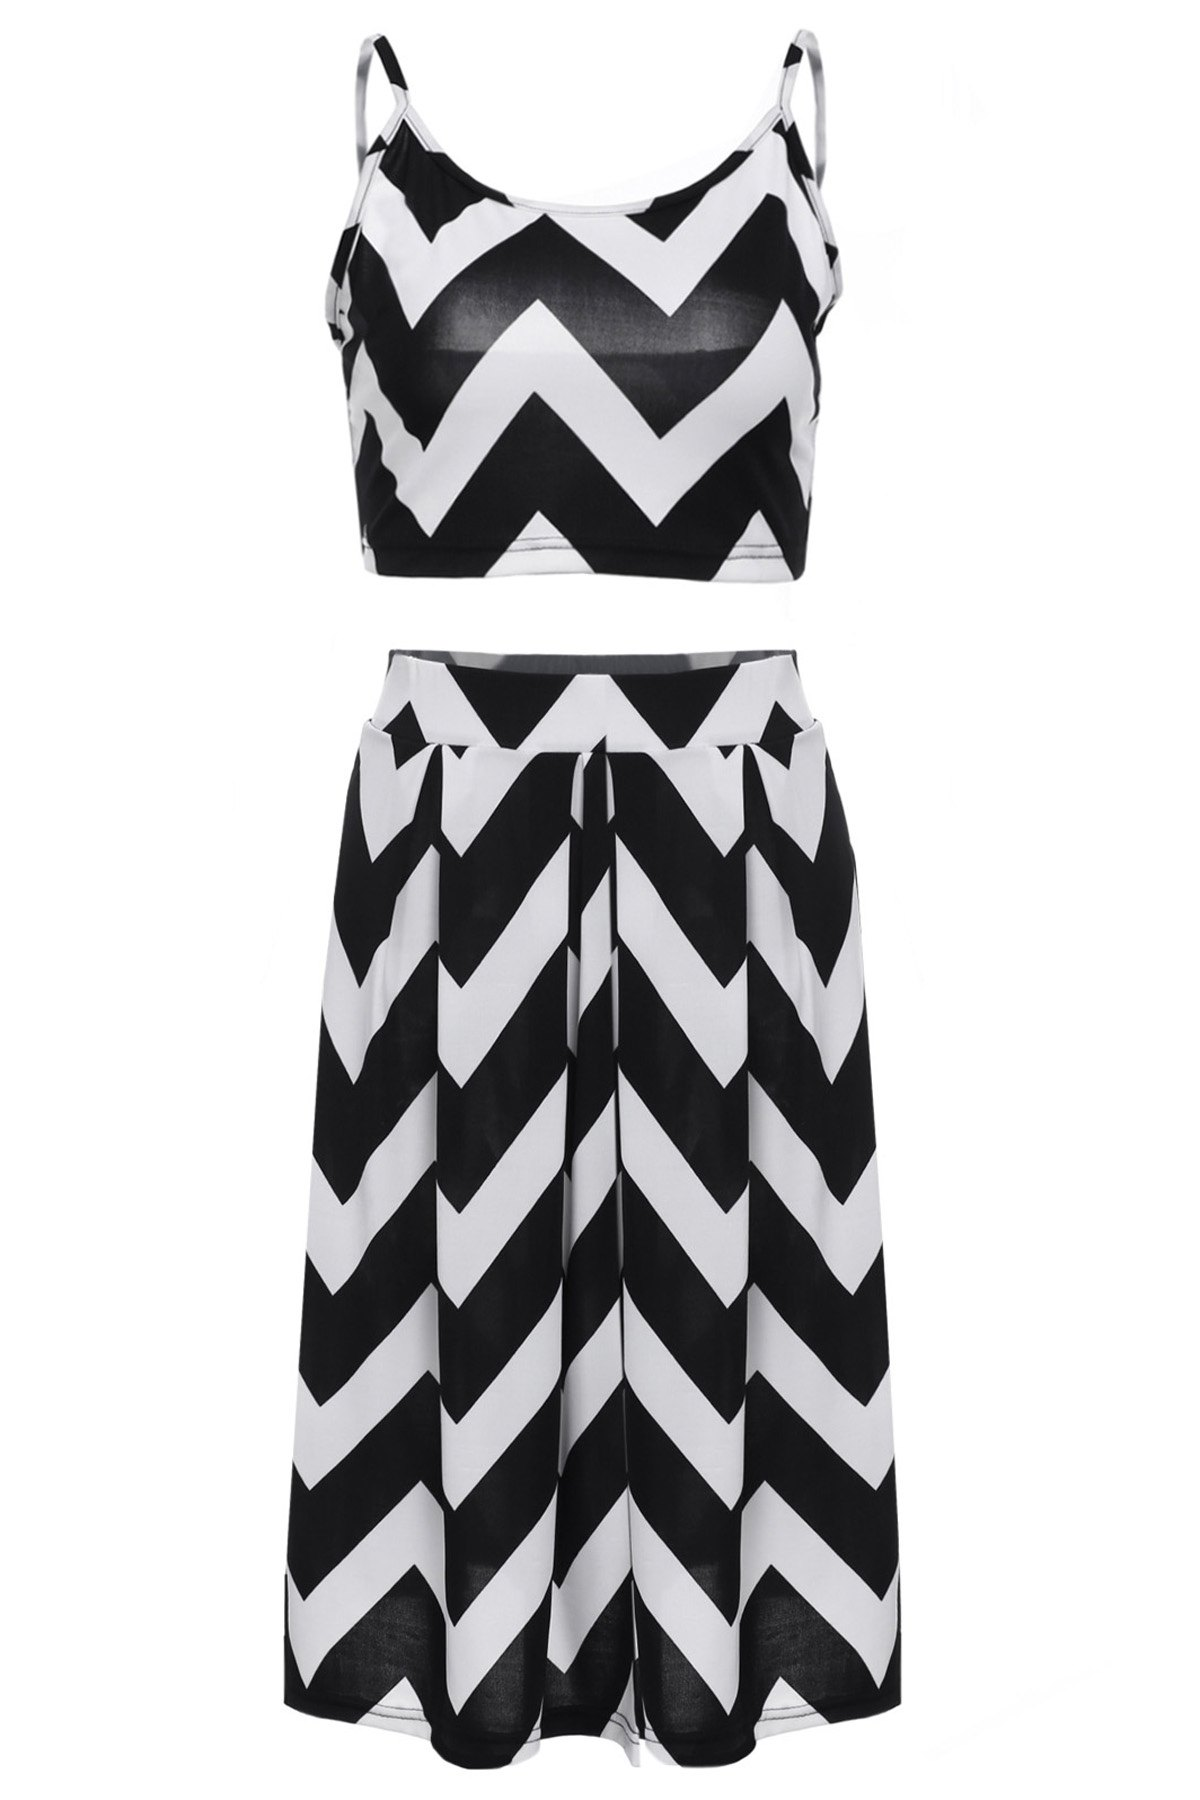 Stylish Spaghetti Strap Tank Top + Wave Print High-Waisted Skirt Women's Twinset - WHITE/BLACK L